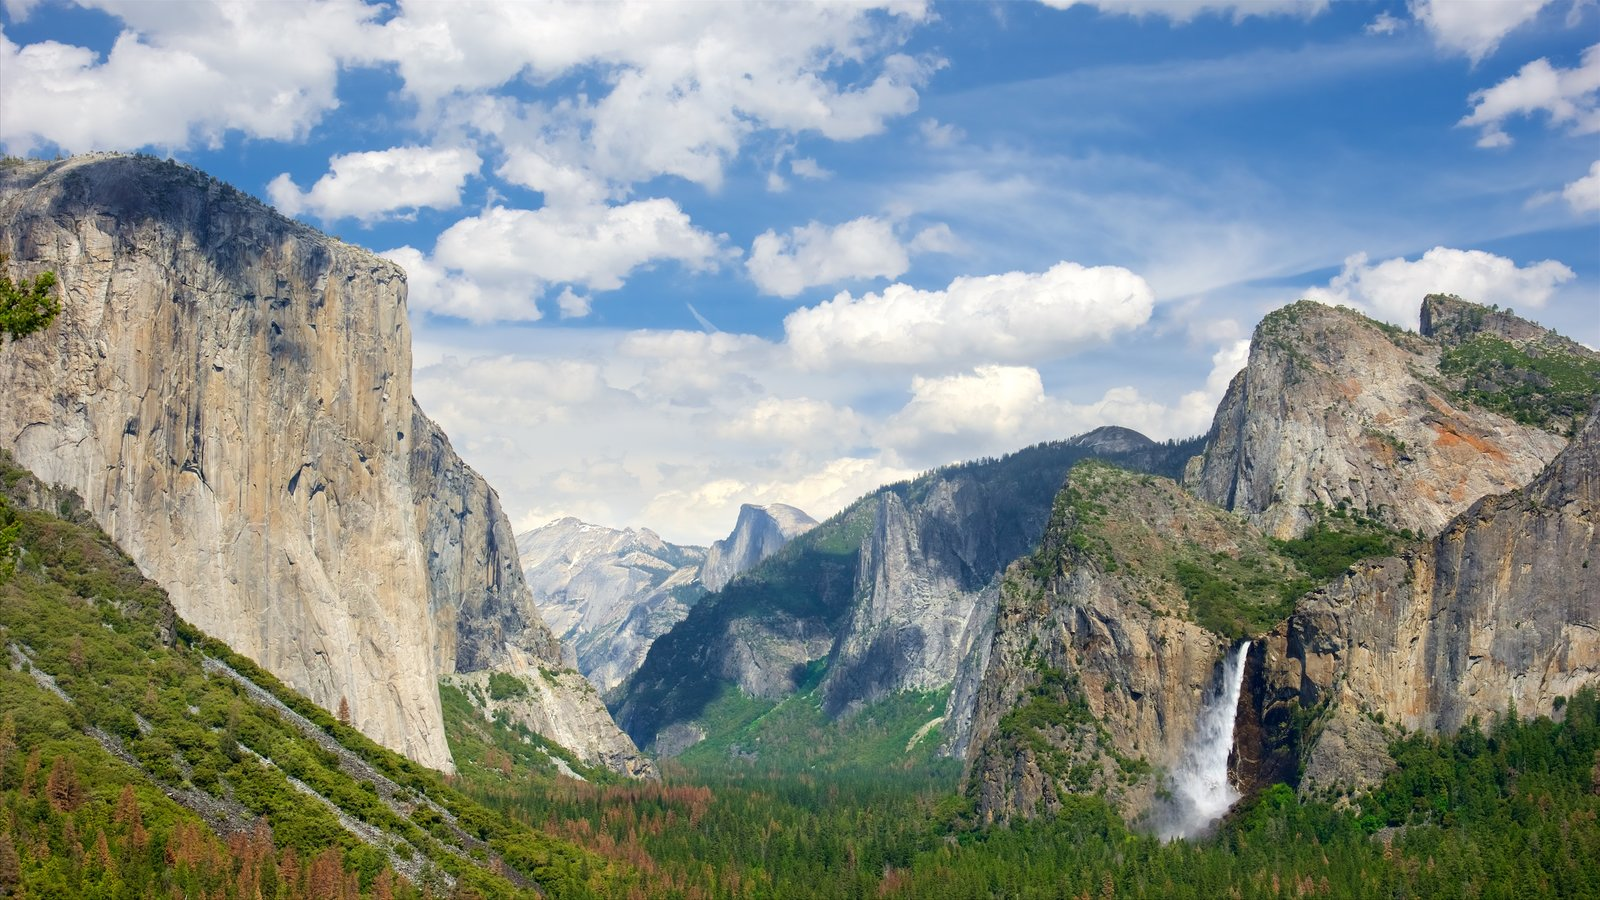 Tunnel View showing landscape views, mountains and forests